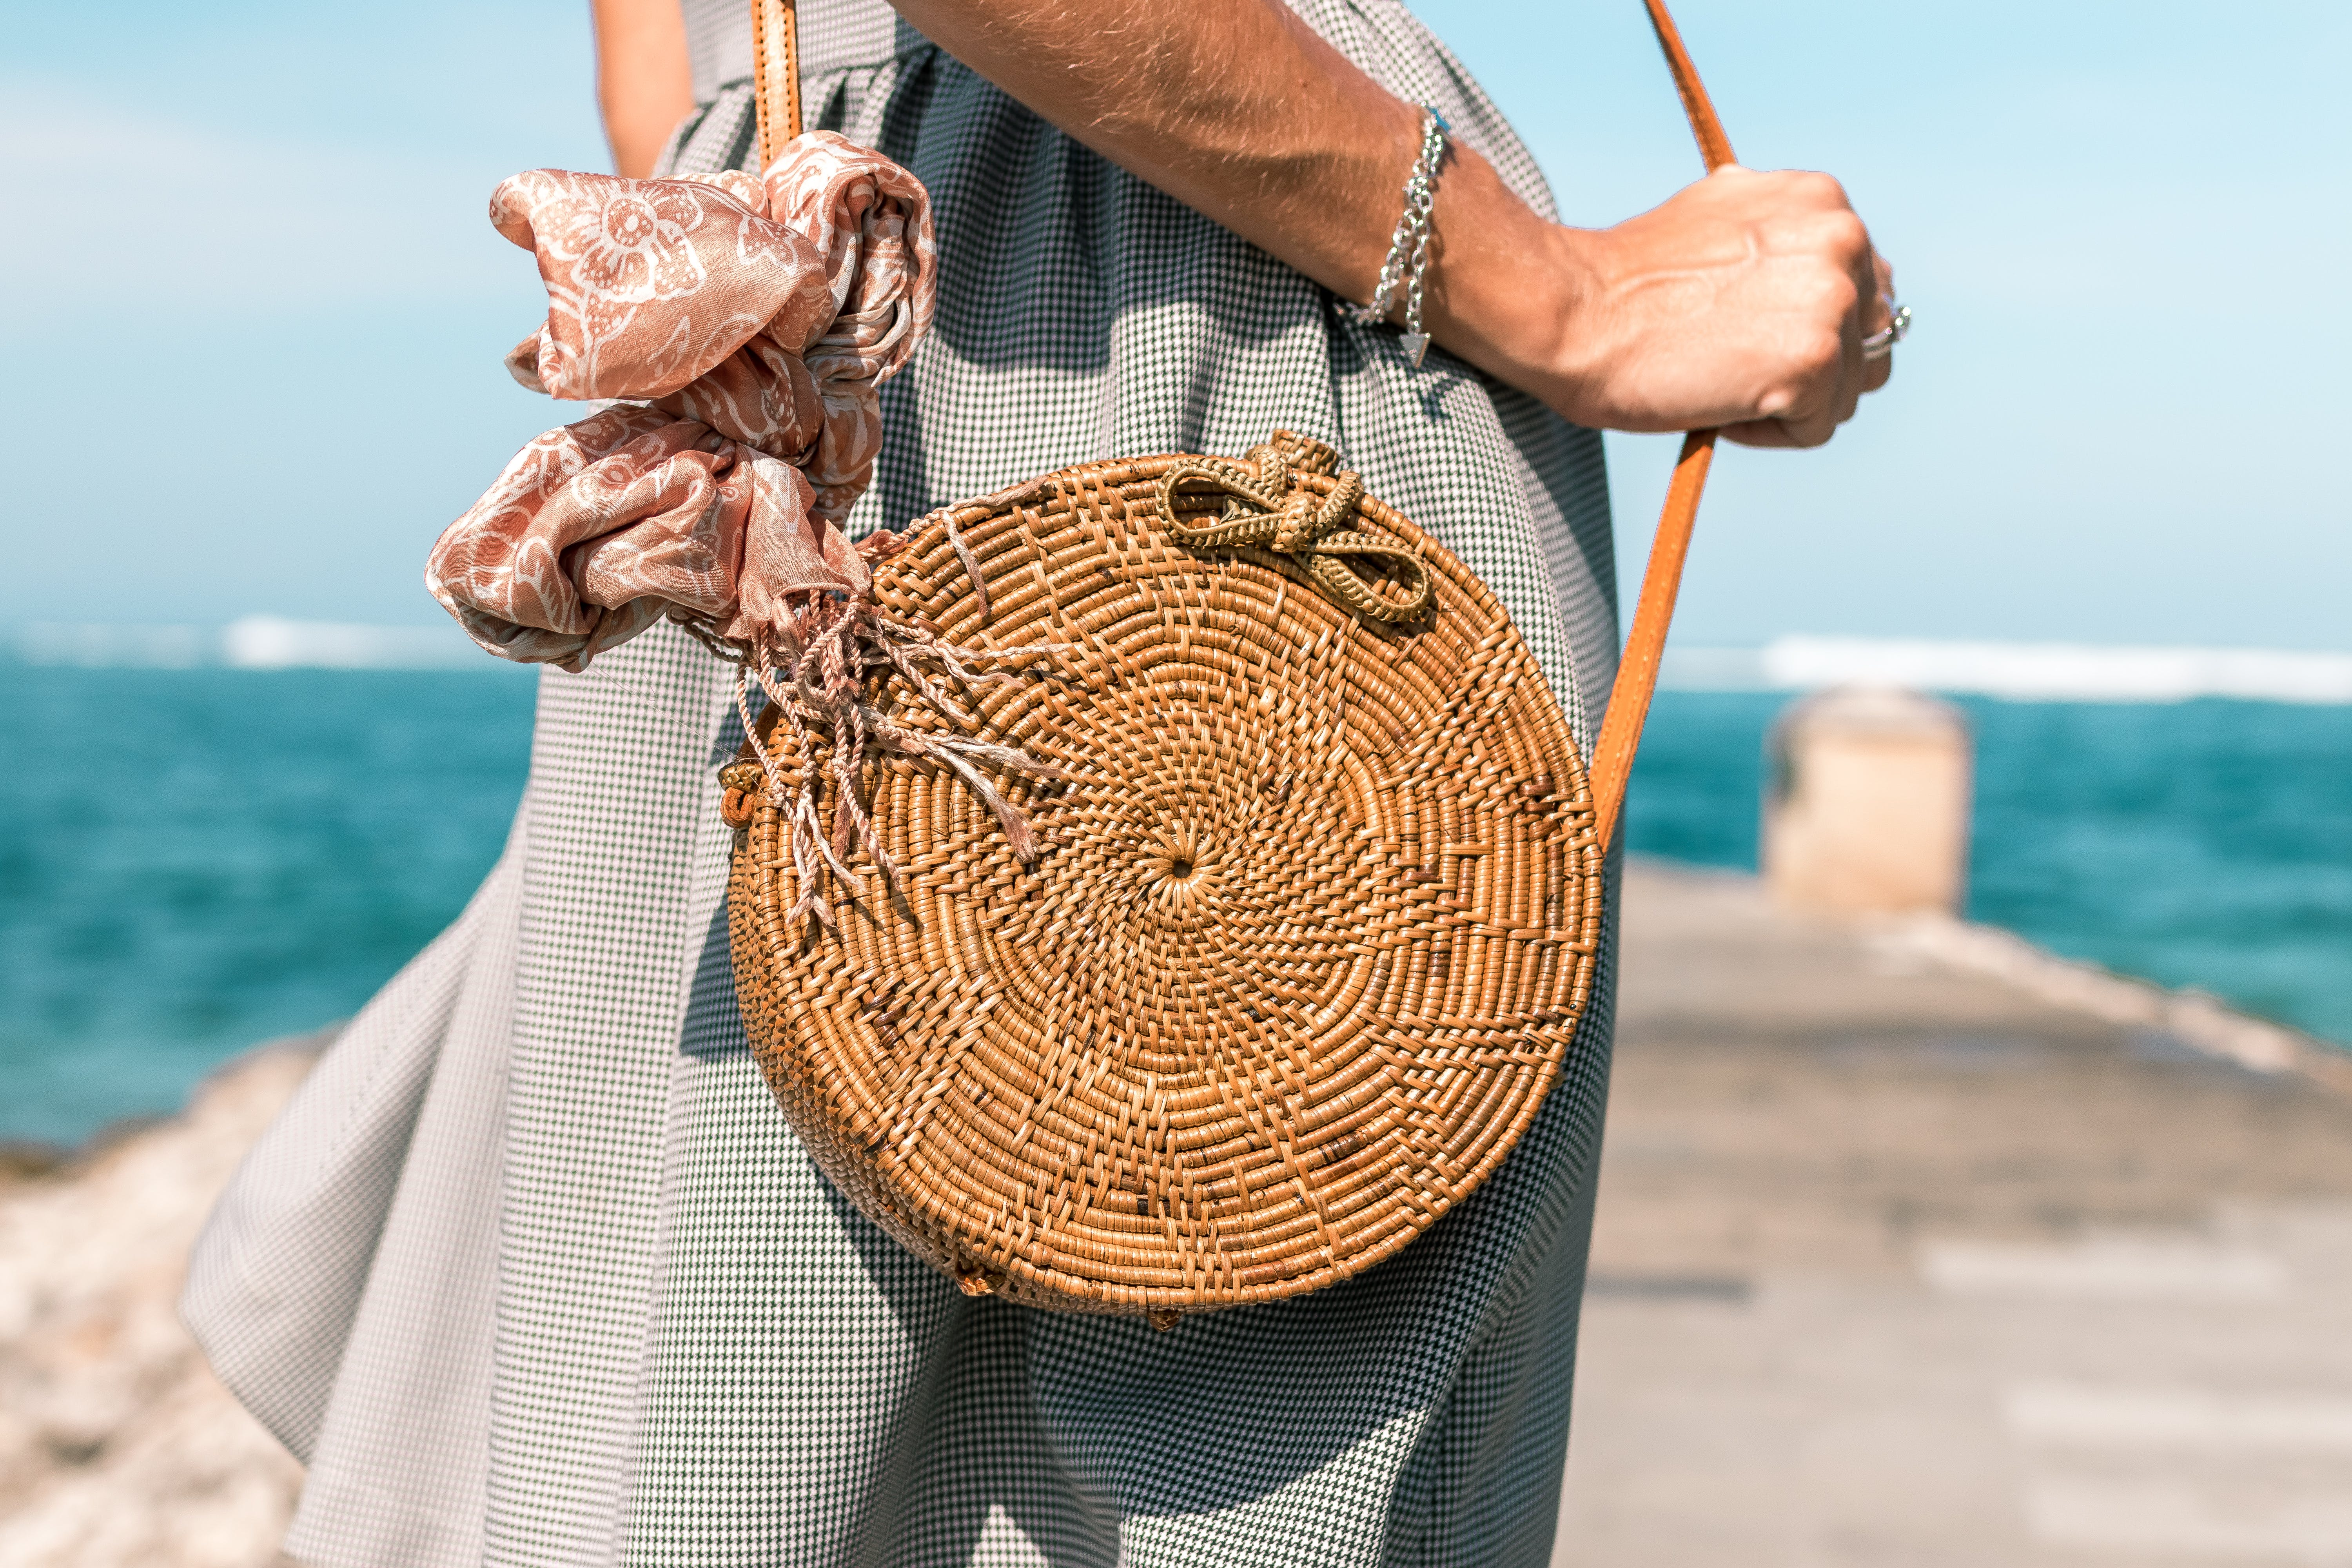 Woman Wearing Grey Skirt and Round Brown Rattan Crossbody Bag on Wooden Dock Near Body of Water